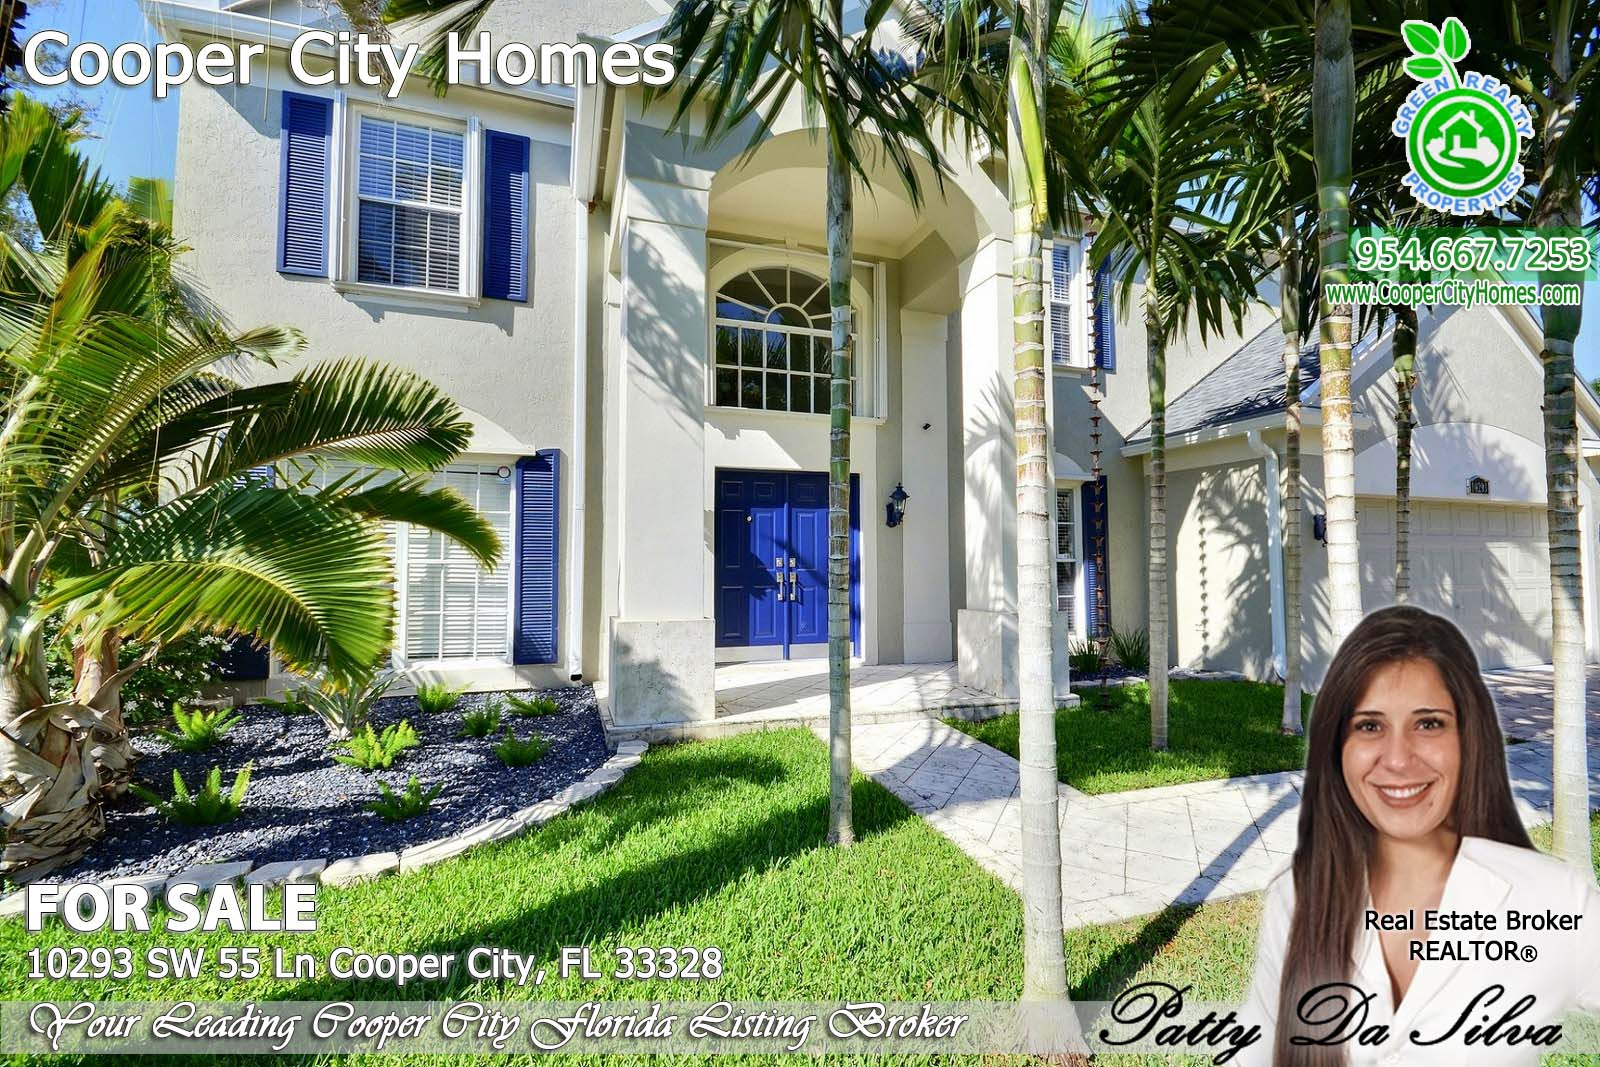 Cooper City Real Estate Broker Patty Da Silva Green Realty Properties (3)